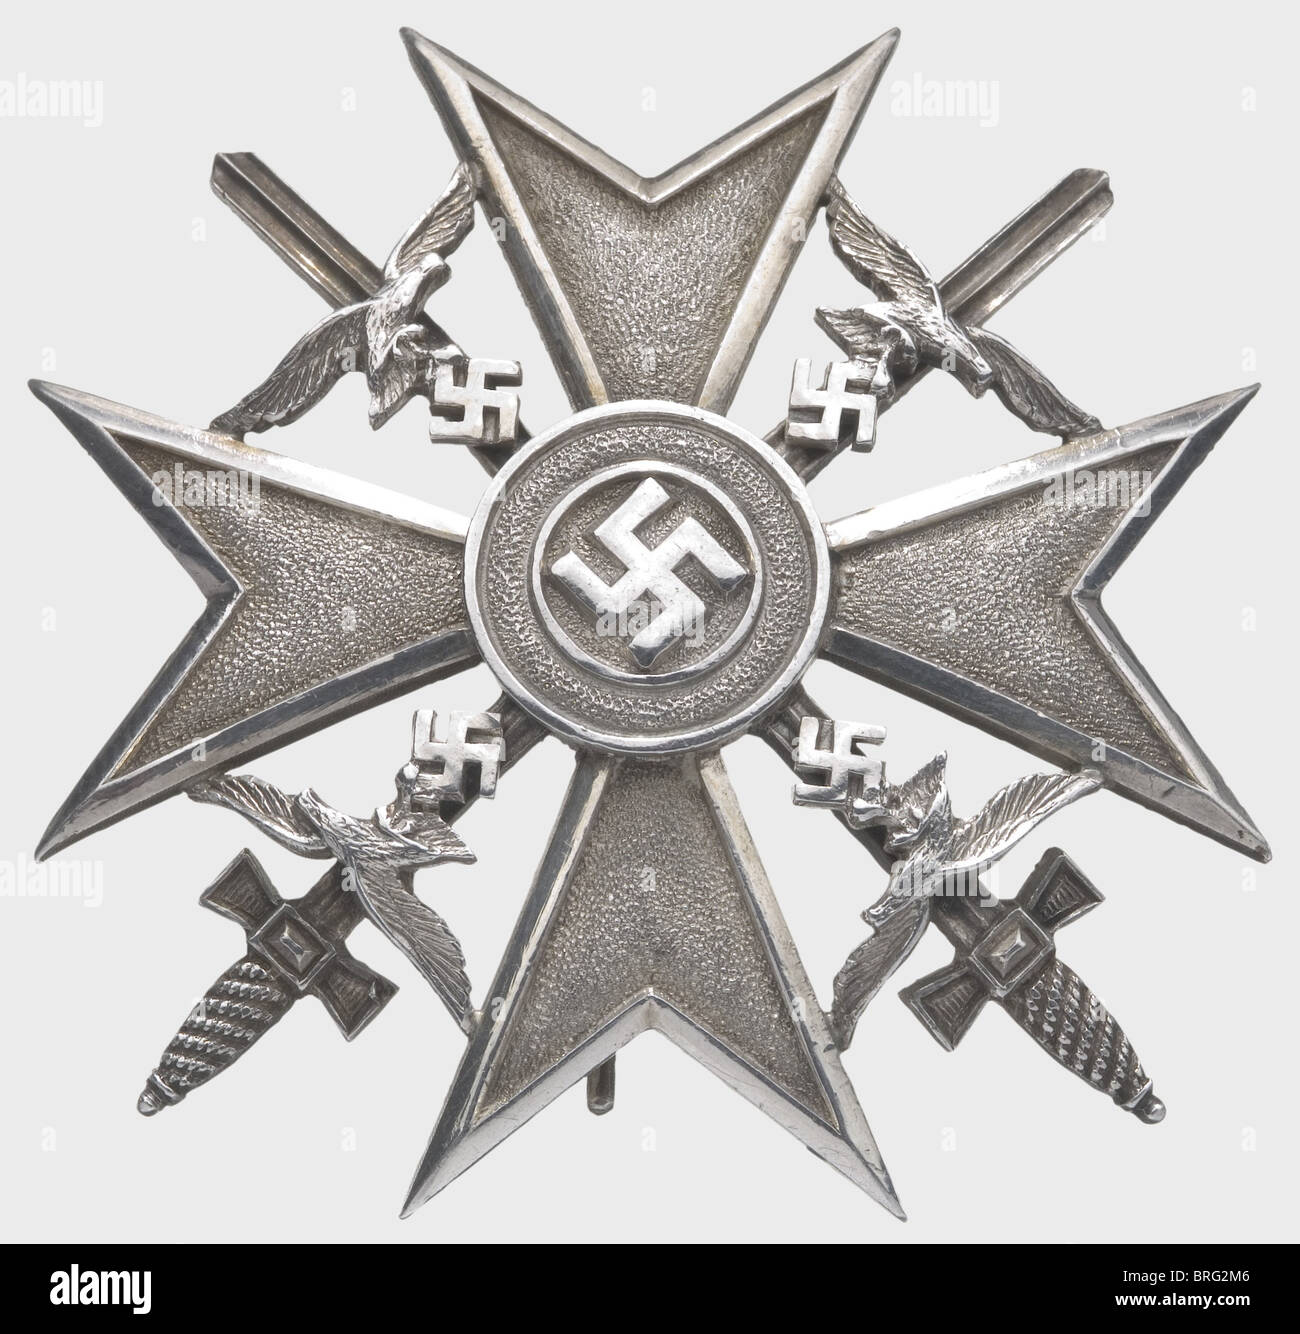 A Spanish Cross in Silver with Swords., Silver with separately applied eagles and medallion, bellied vertical attachment - Stock Image